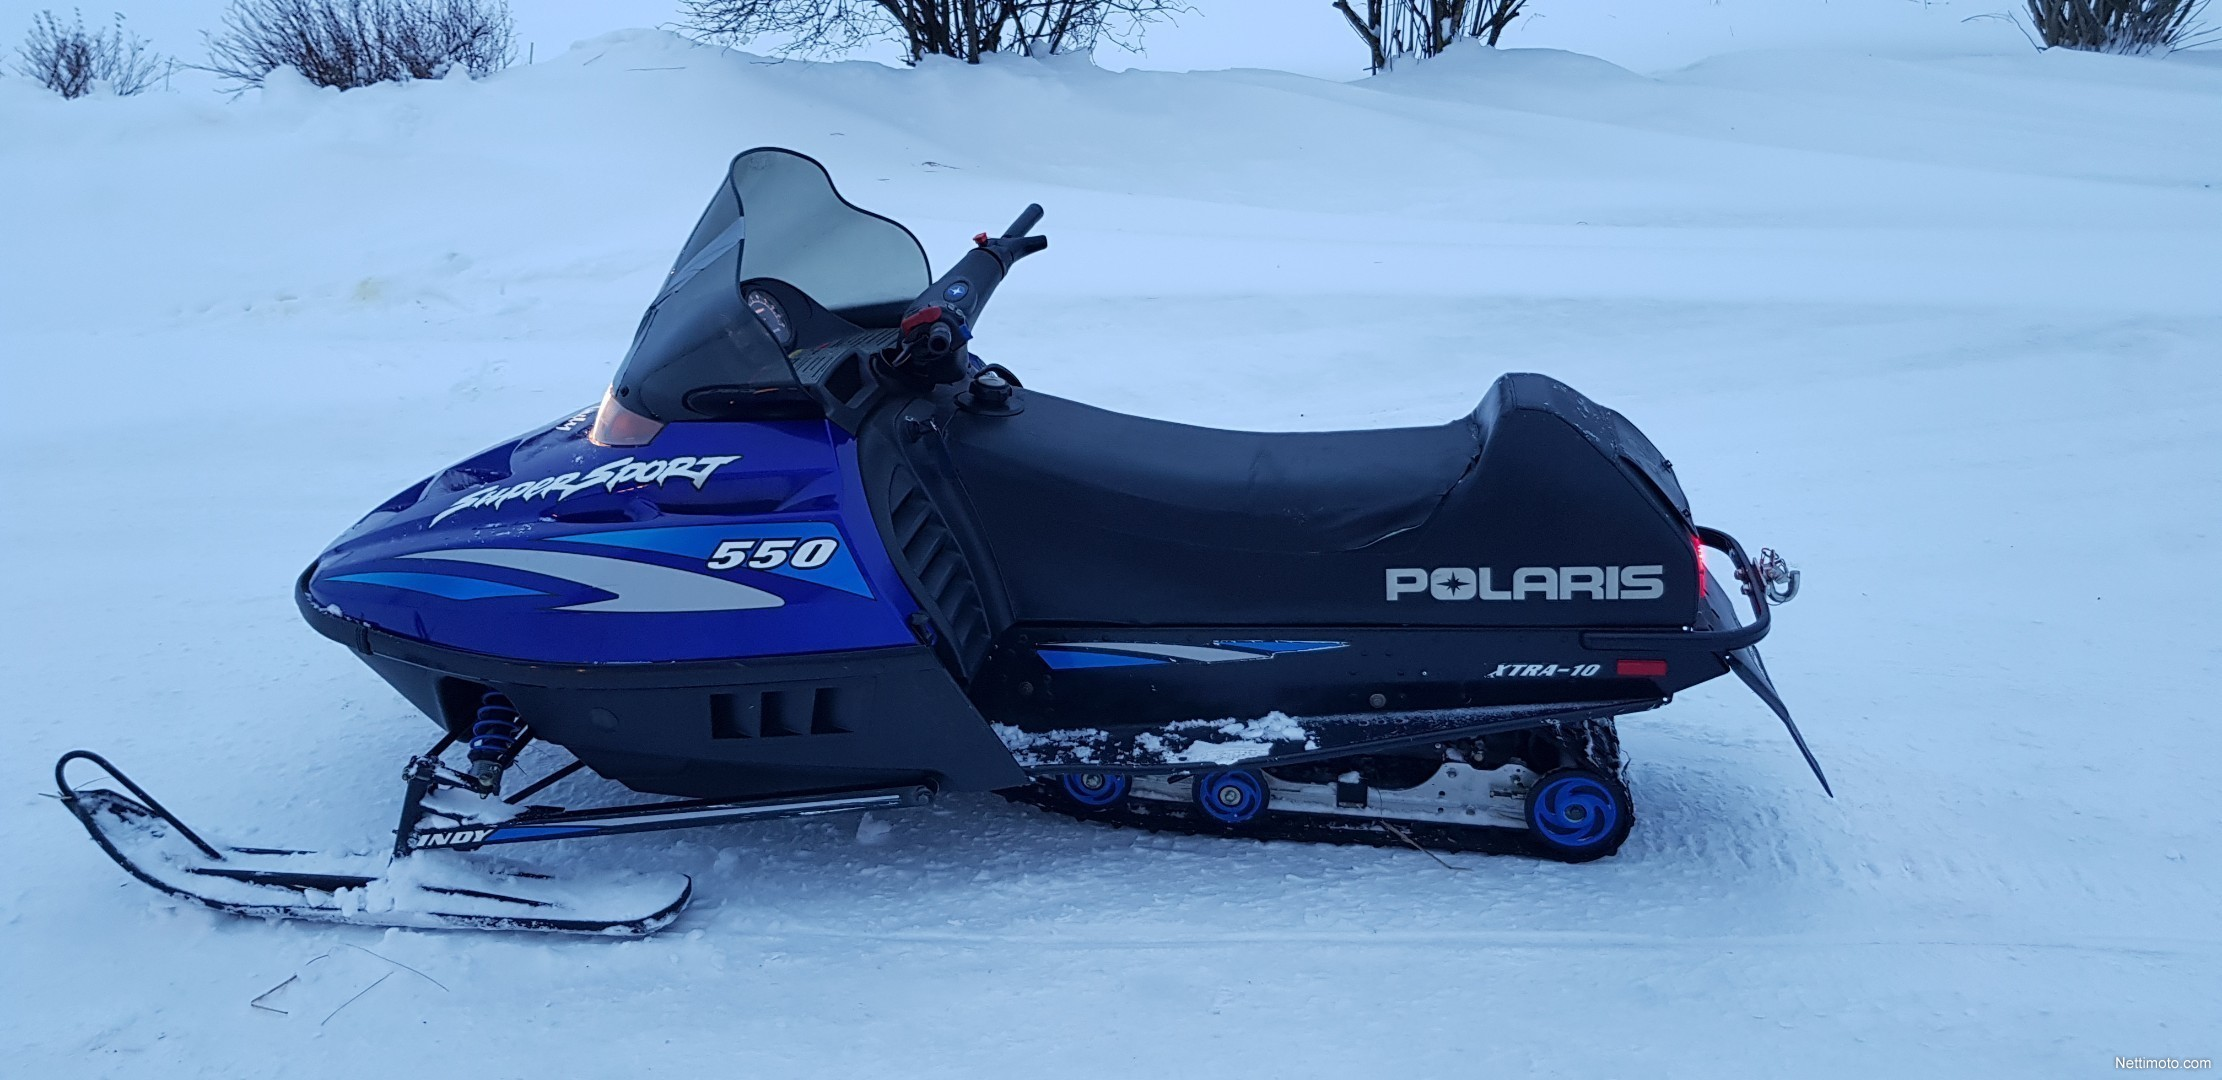 Polaris 550 Supersport Polaris Indy 550 Super Sport 550